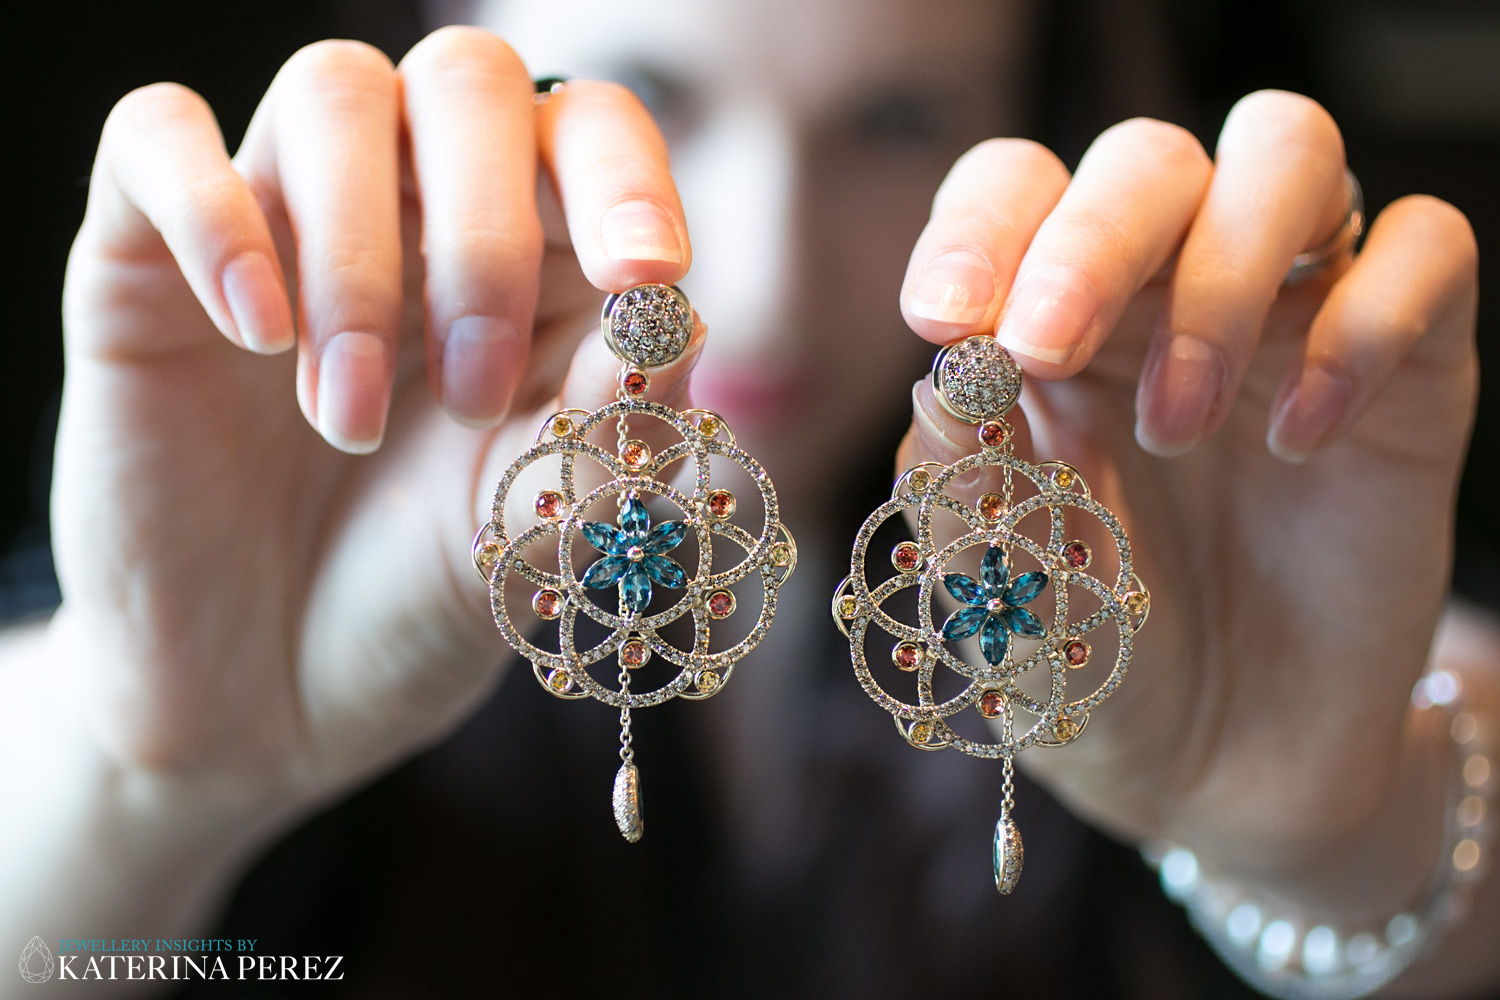 Lily Gabriella earrings from Damali collection with diamonds, sapphires and topaz